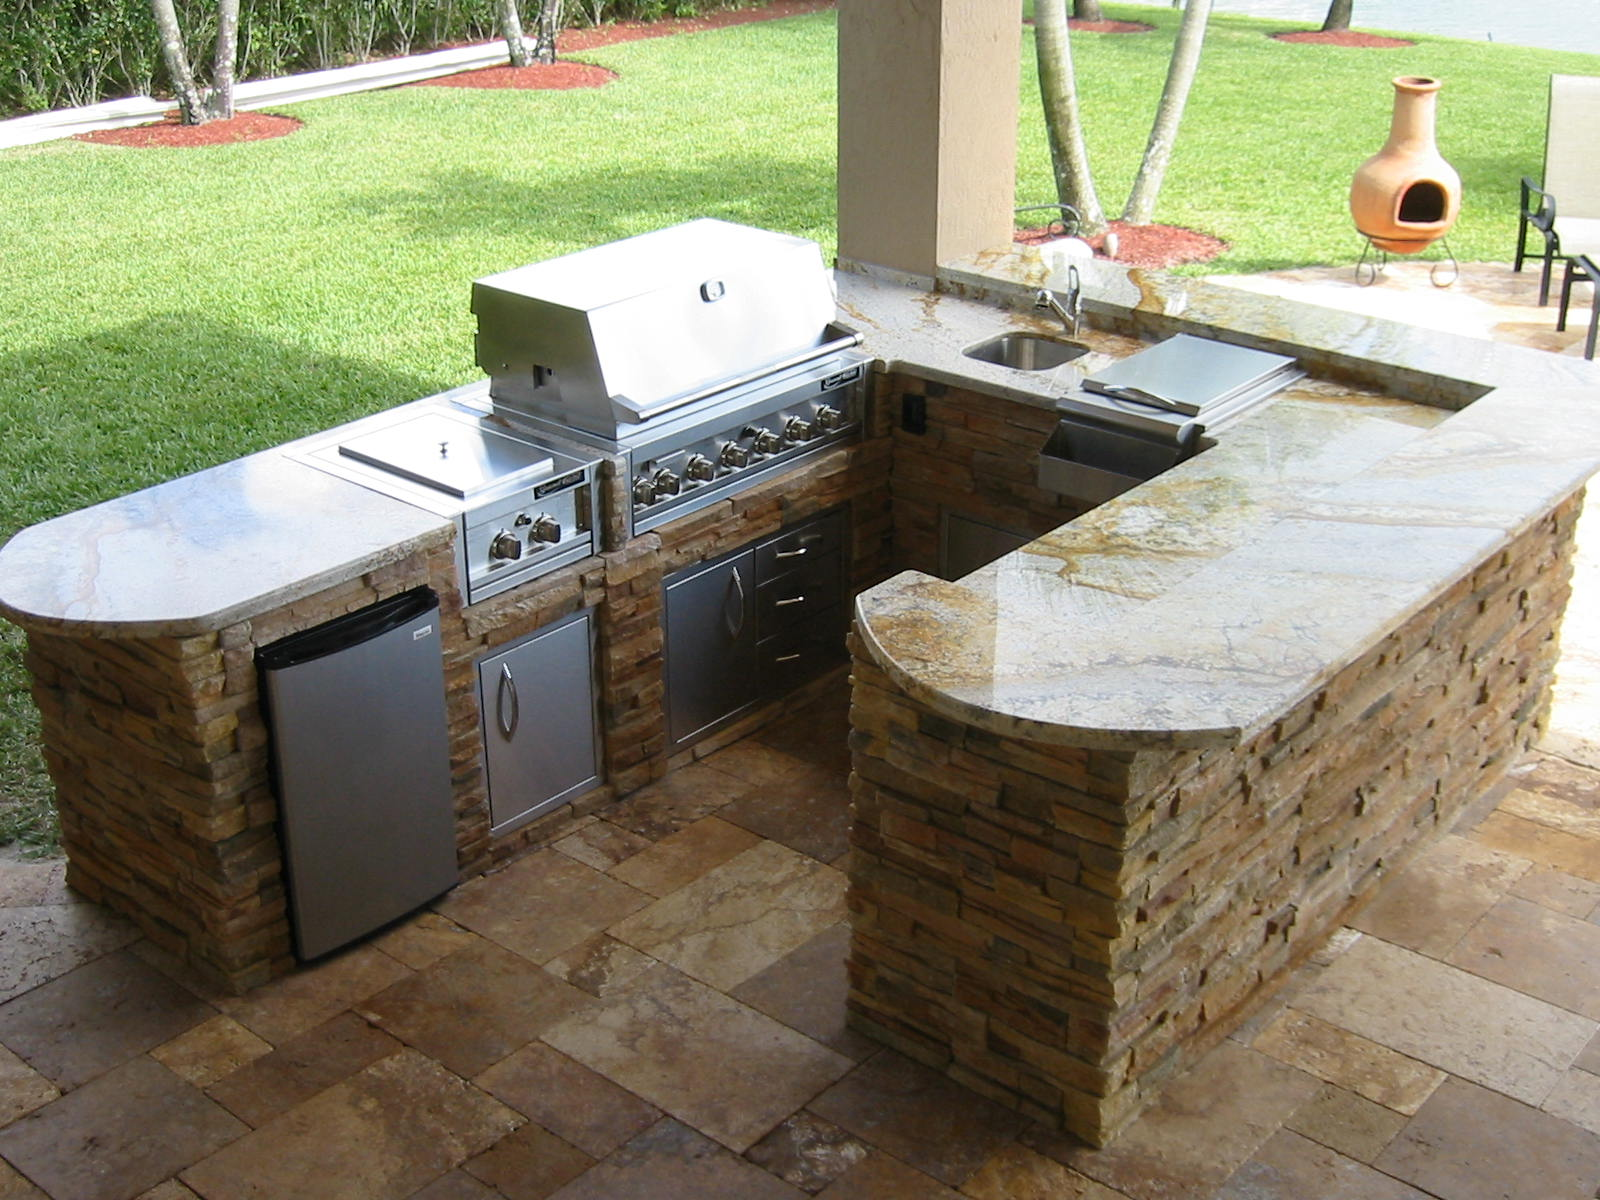 Http Lshapedkitchendesignsz Blogspot Com 2012 09 Outdoor Kitchen Grills Html